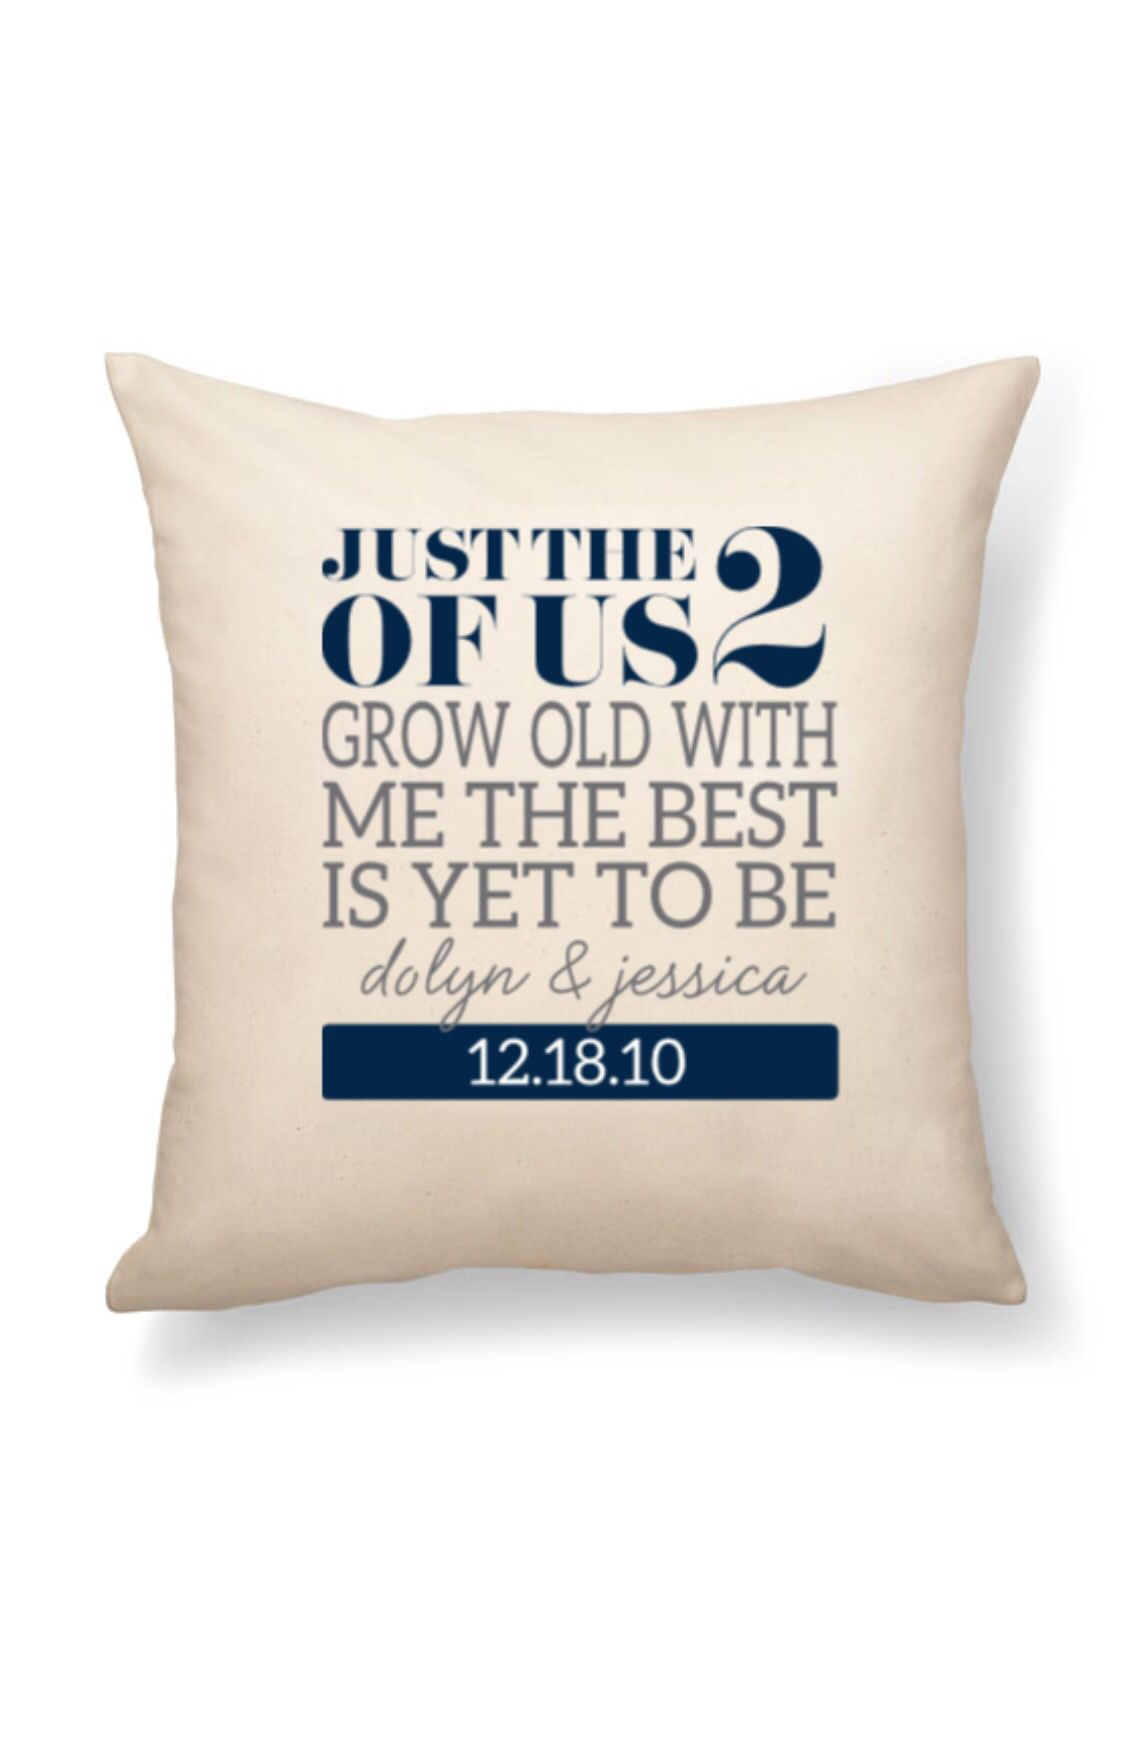 24x24 canvas pillow. Easily personalized to fit any decor!